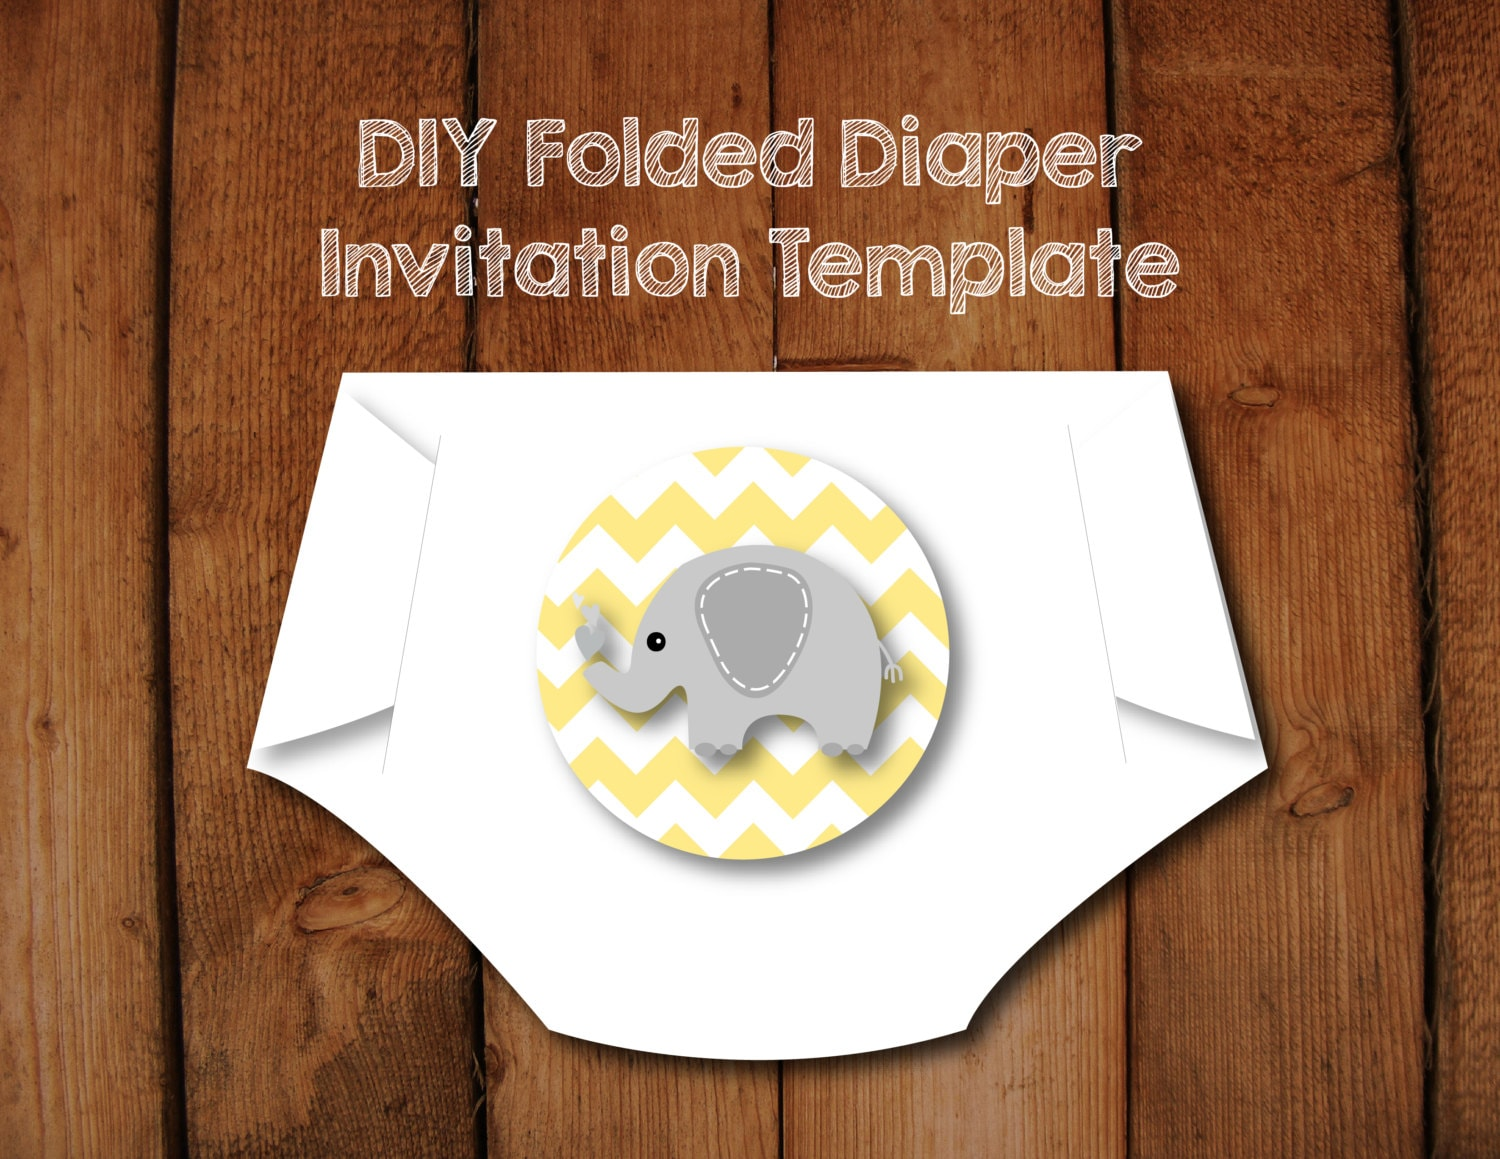 Diaper Invitation Template DIY Pattern with Instructions Make